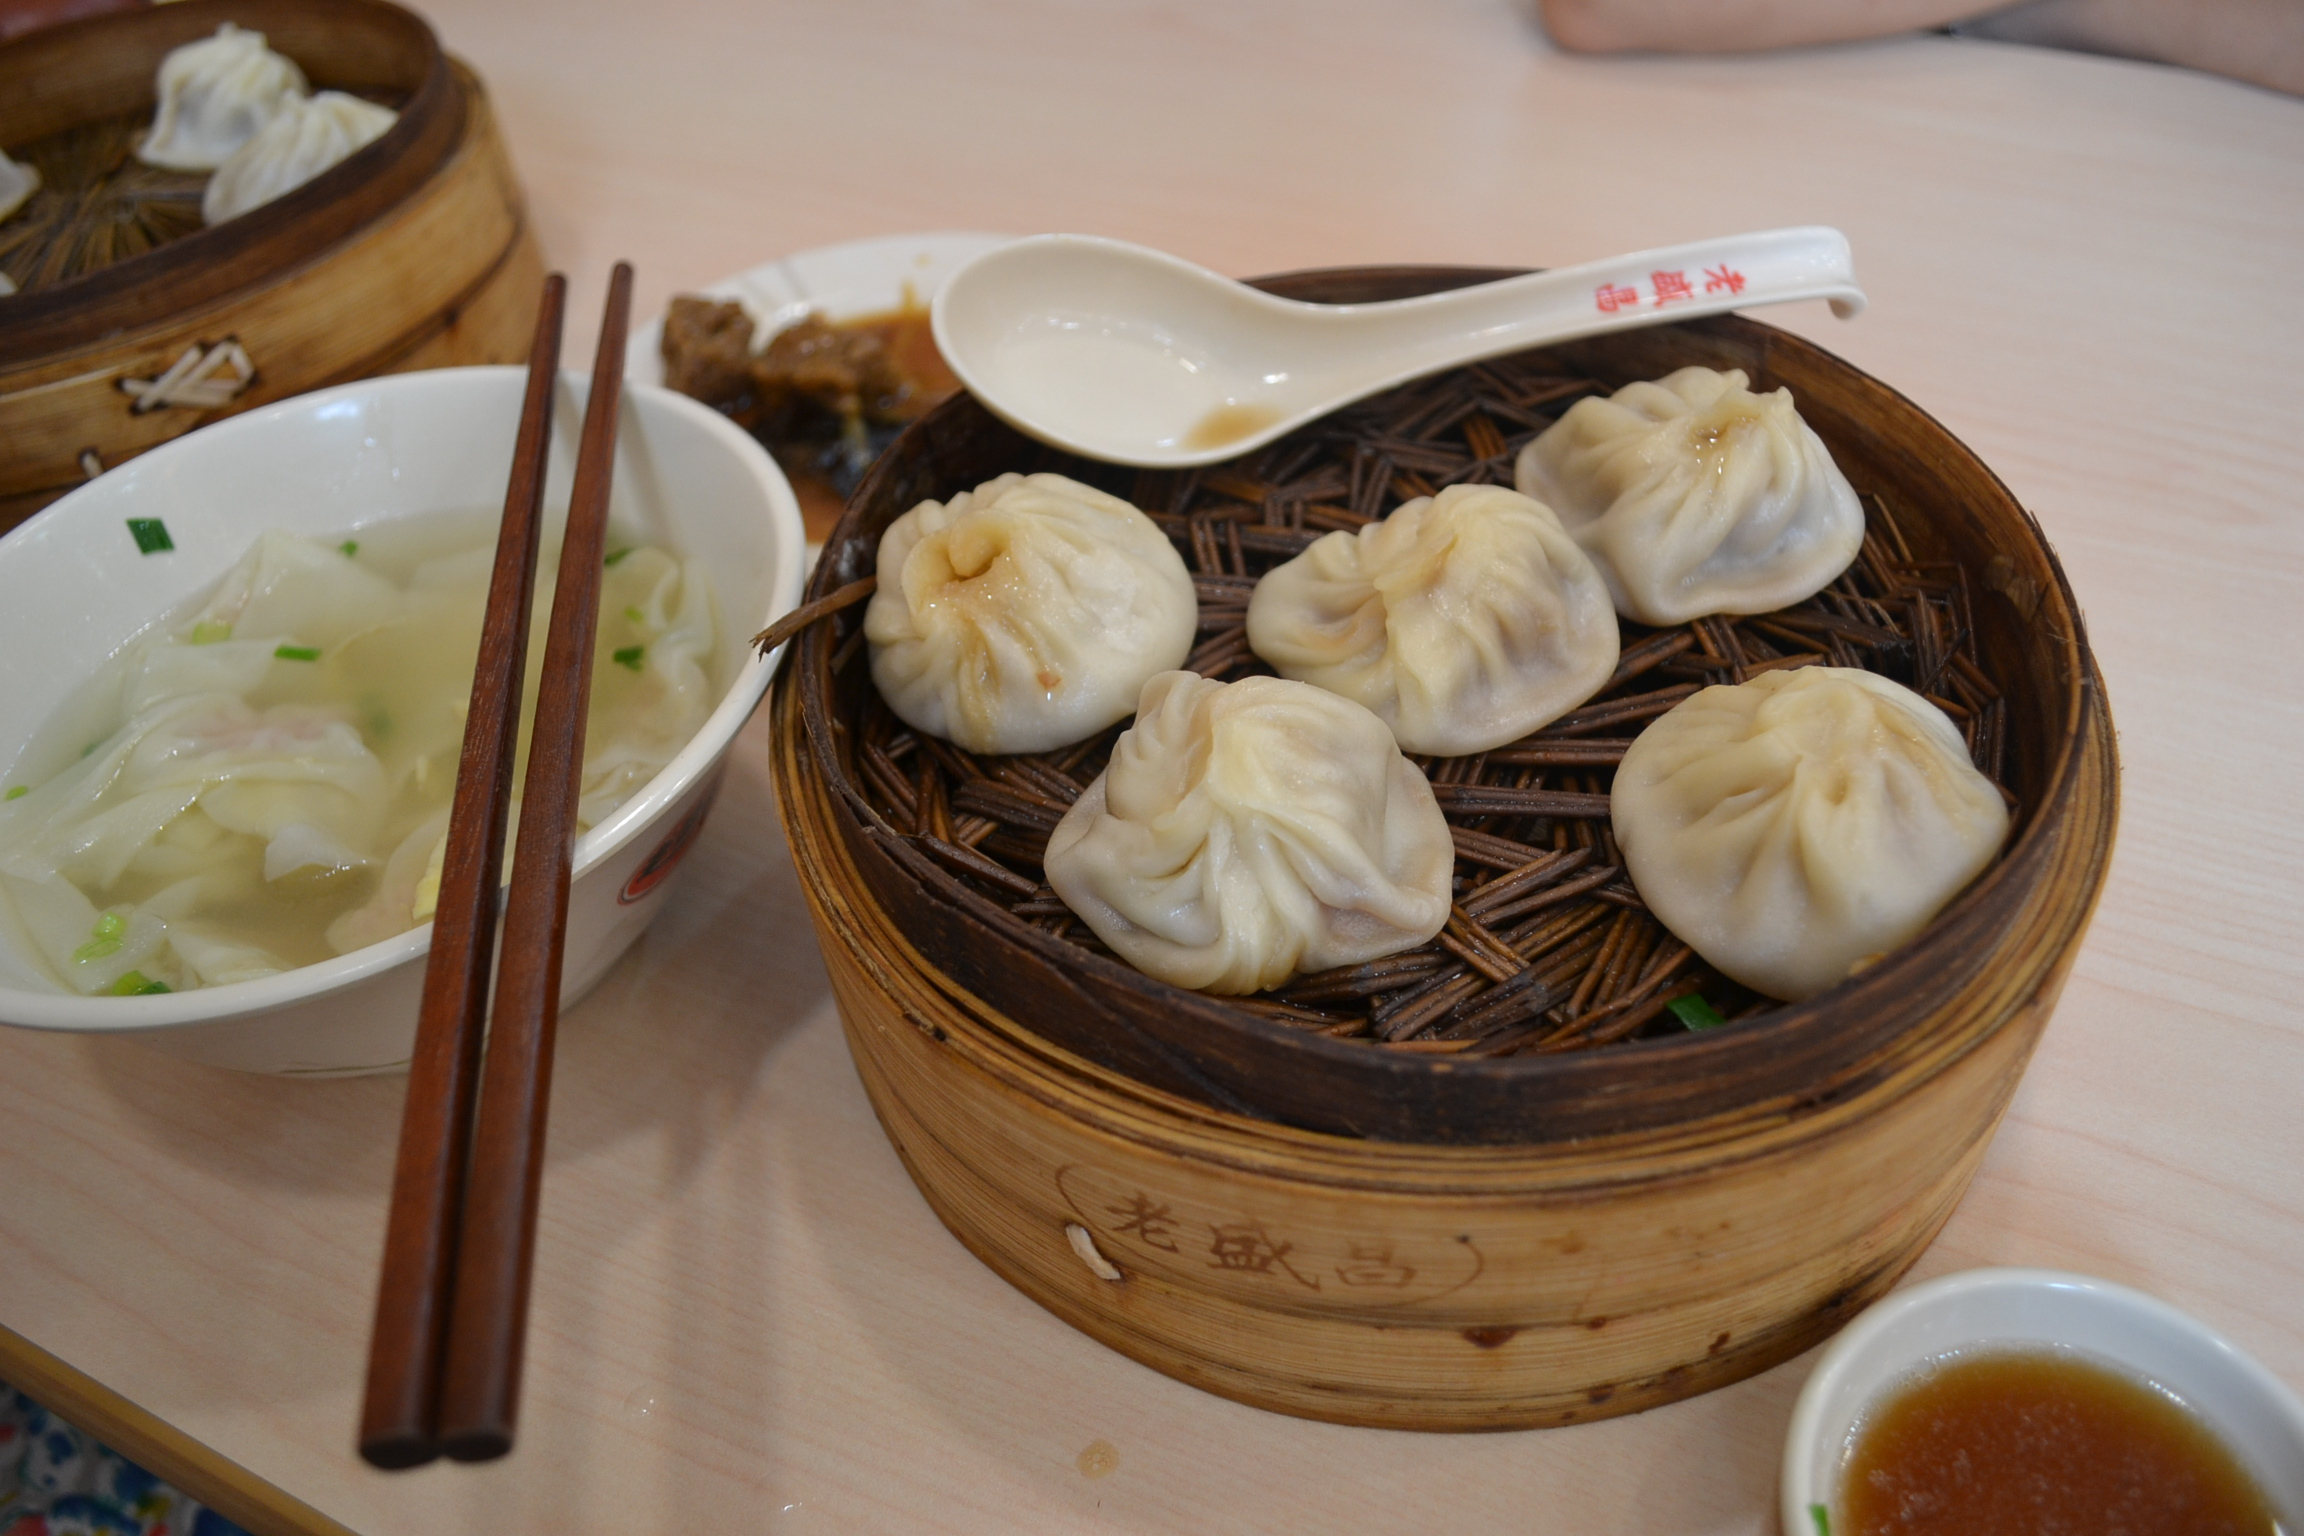 Dumplings at Laoshengchang